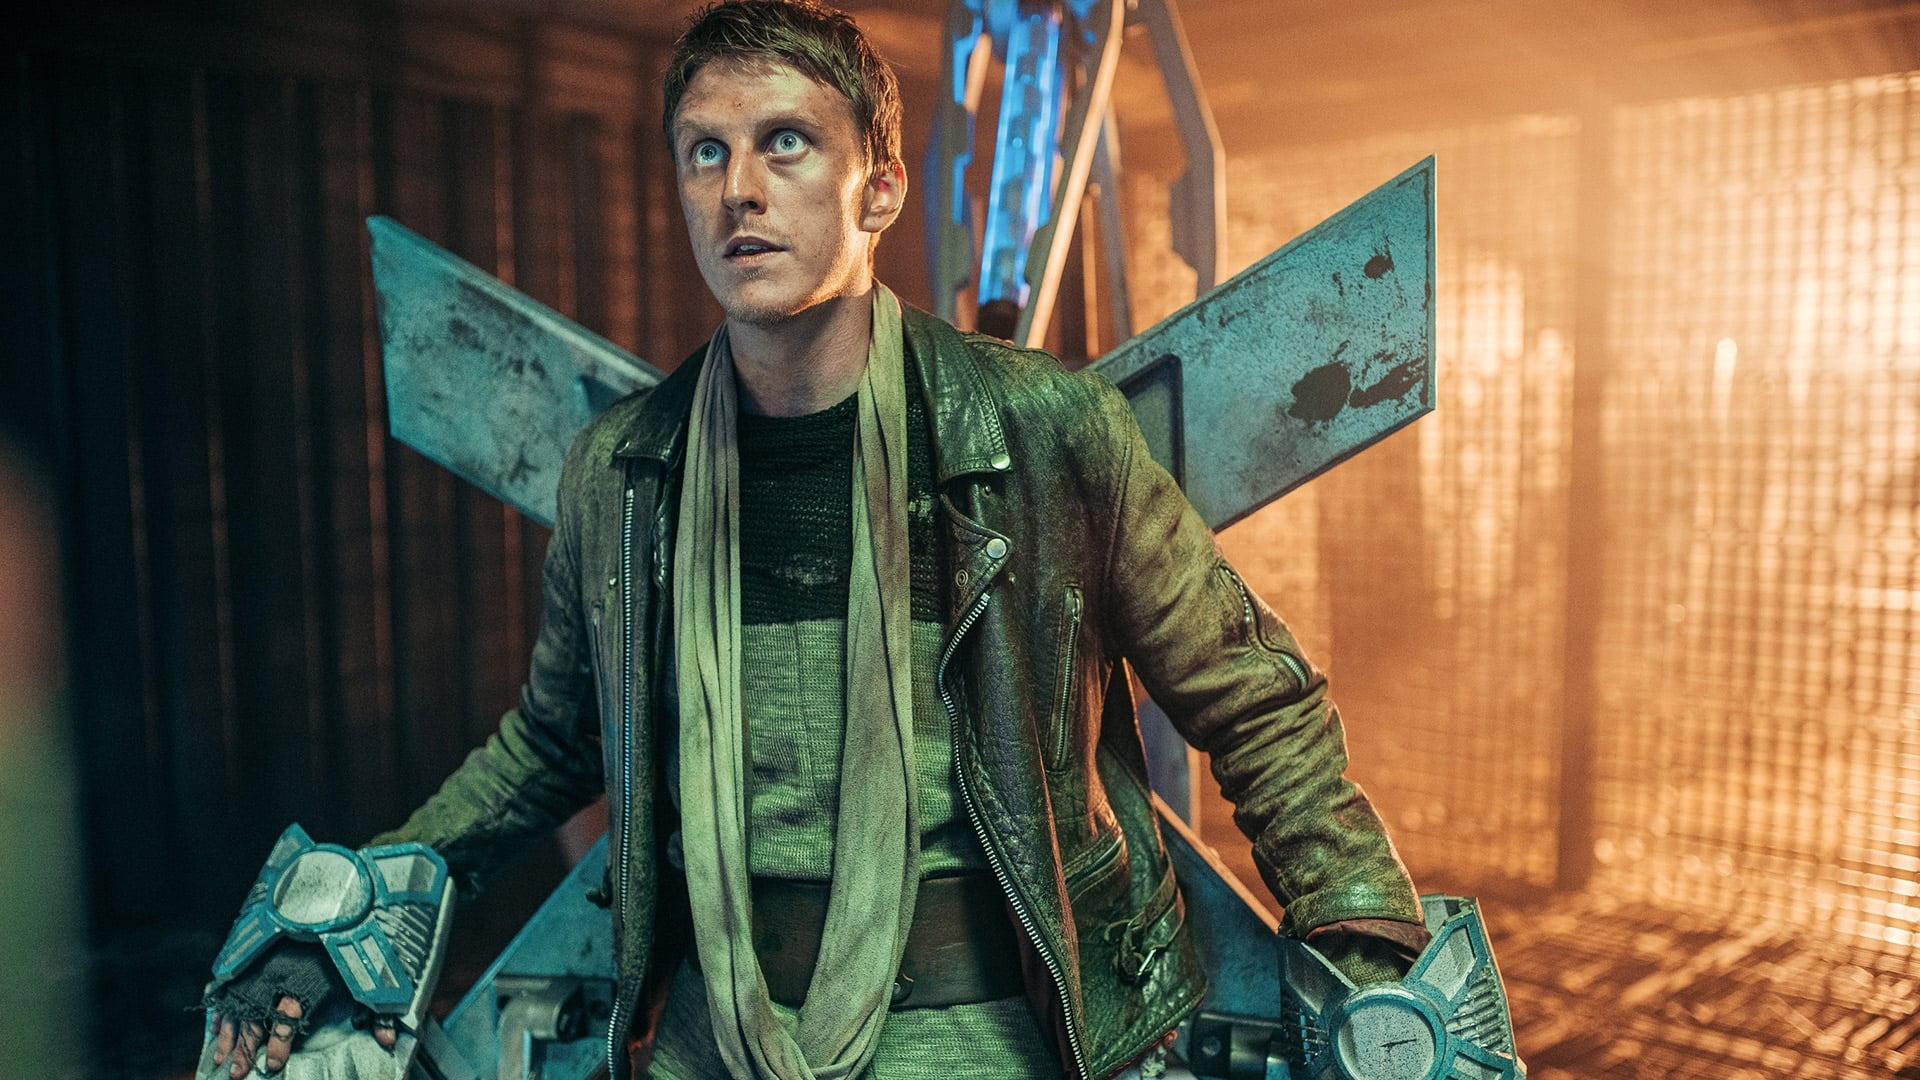 Doctor Who - Season 12 Episode 9 : The Ascension of the Cybermen (1)